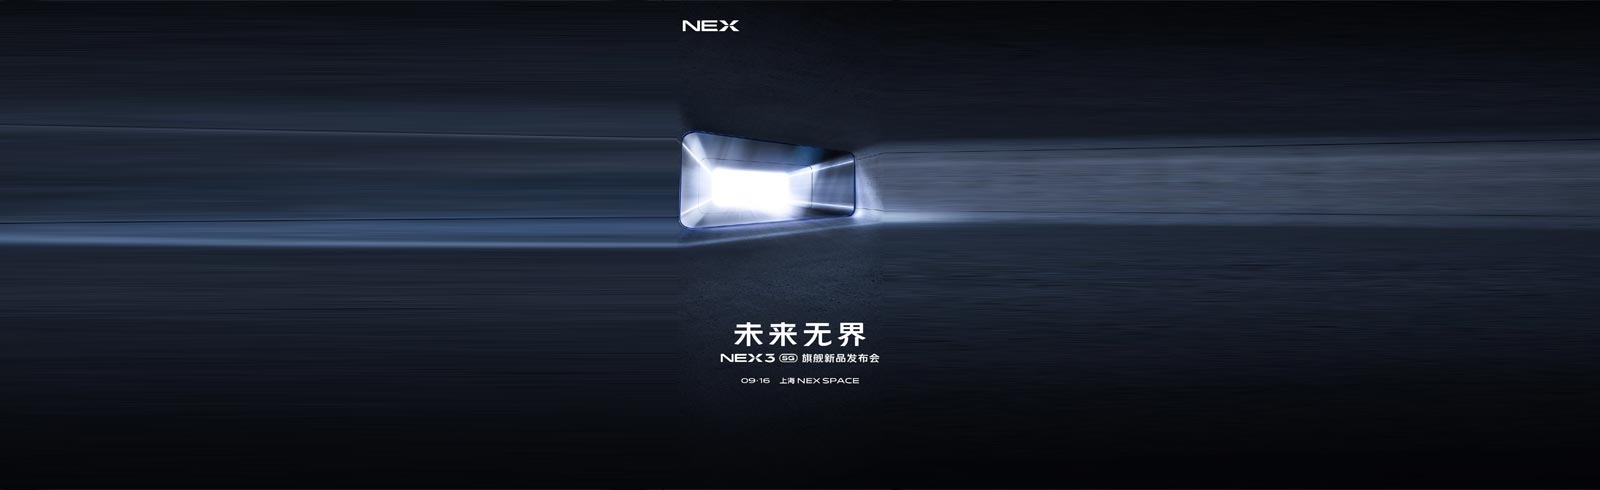 Vivo NEX 3 5G will be unveiled on September 16th